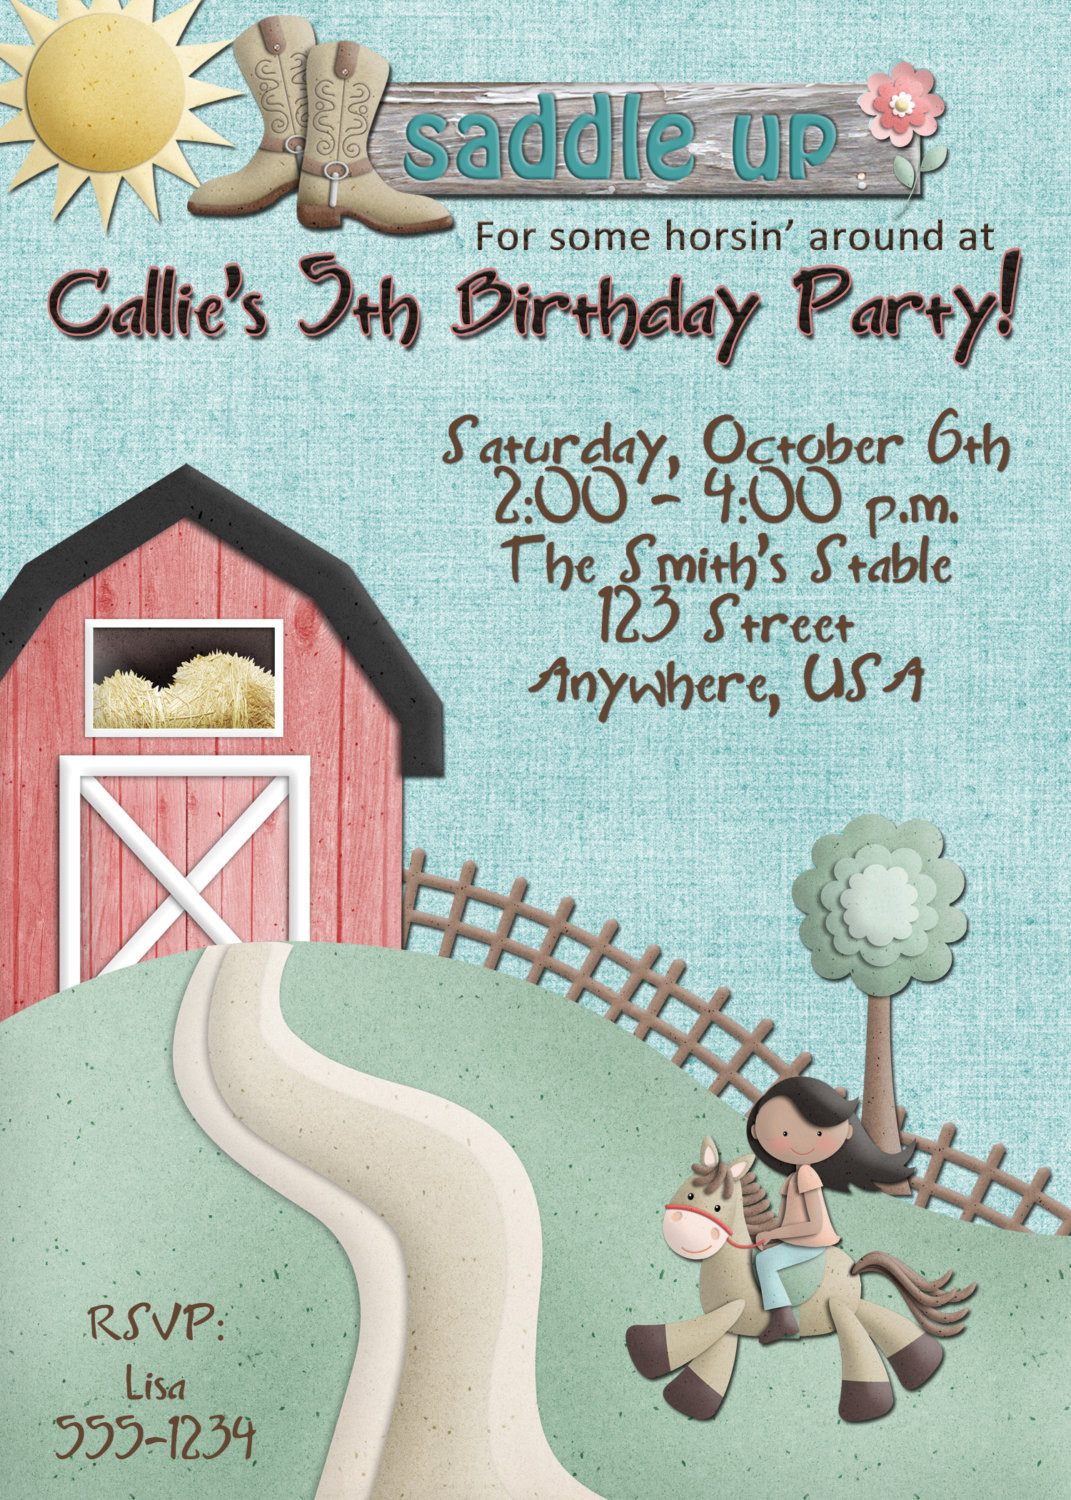 Best ideas about Horse Riding Birthday Party . Save or Pin Horse Riding Birthday Party Invitation GIRL Now.